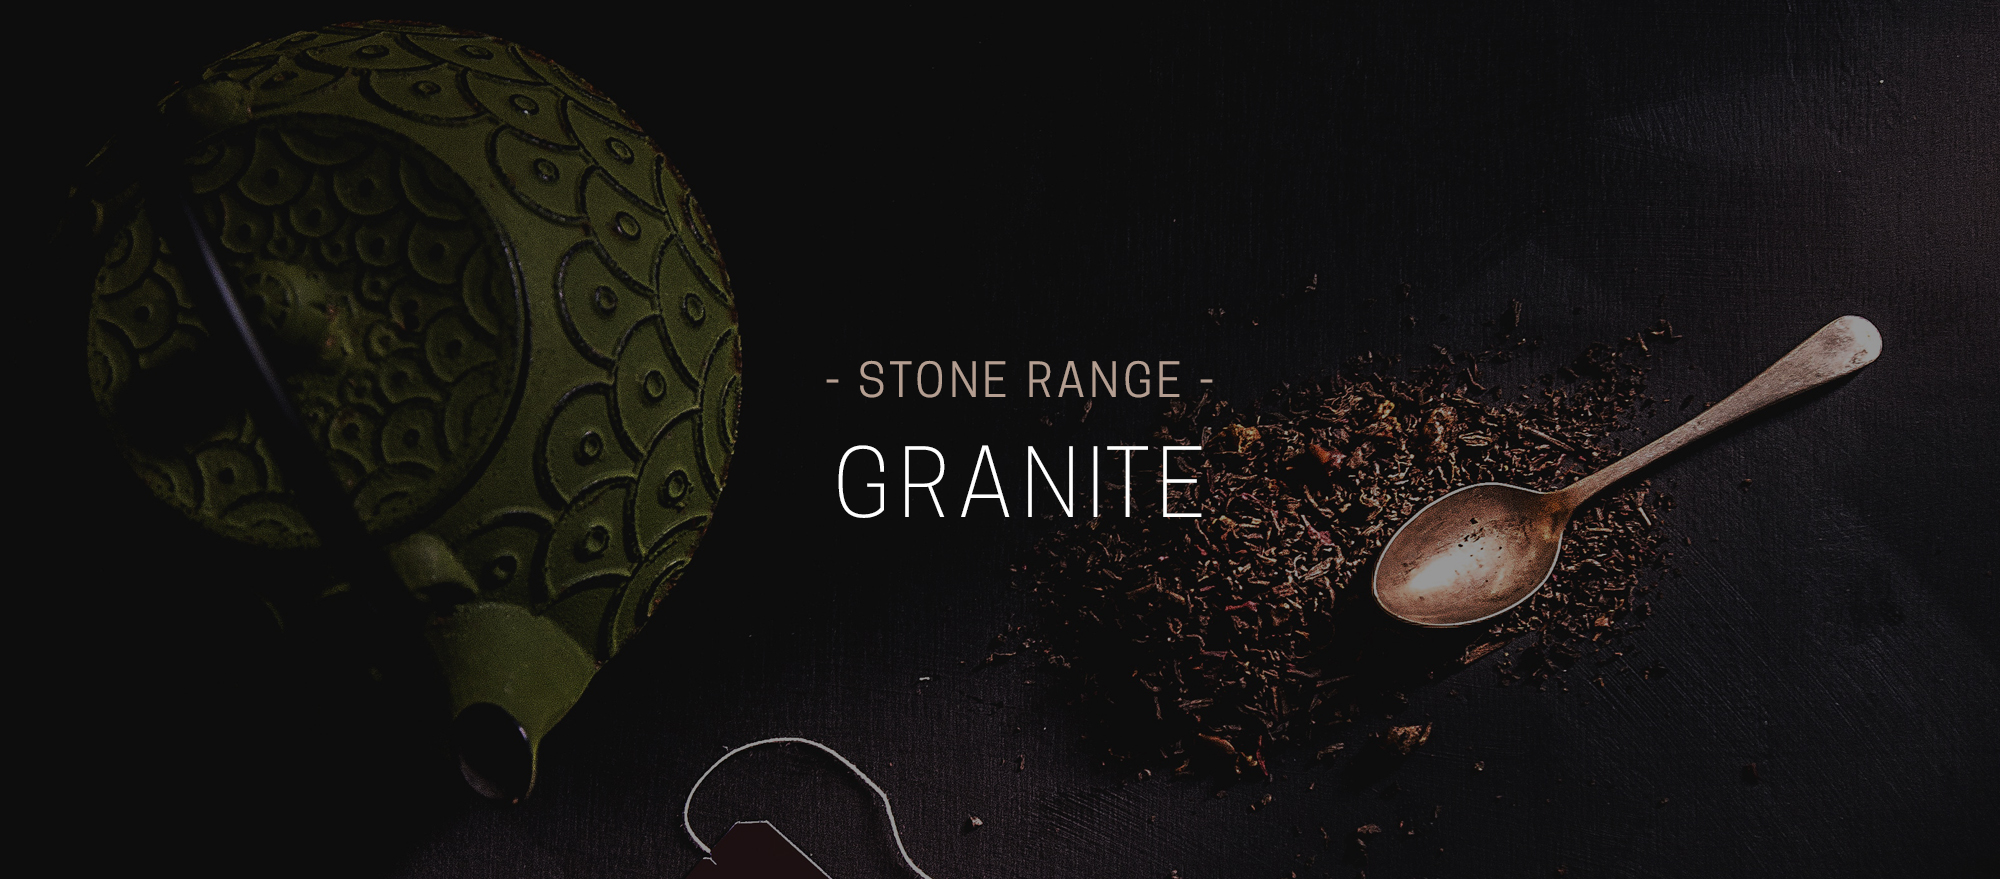 "<strong>Bristol Marble & Granite__</strong><p>Experts in stone<br><a href=""/bristol-marble"">View case study →</a></p>"